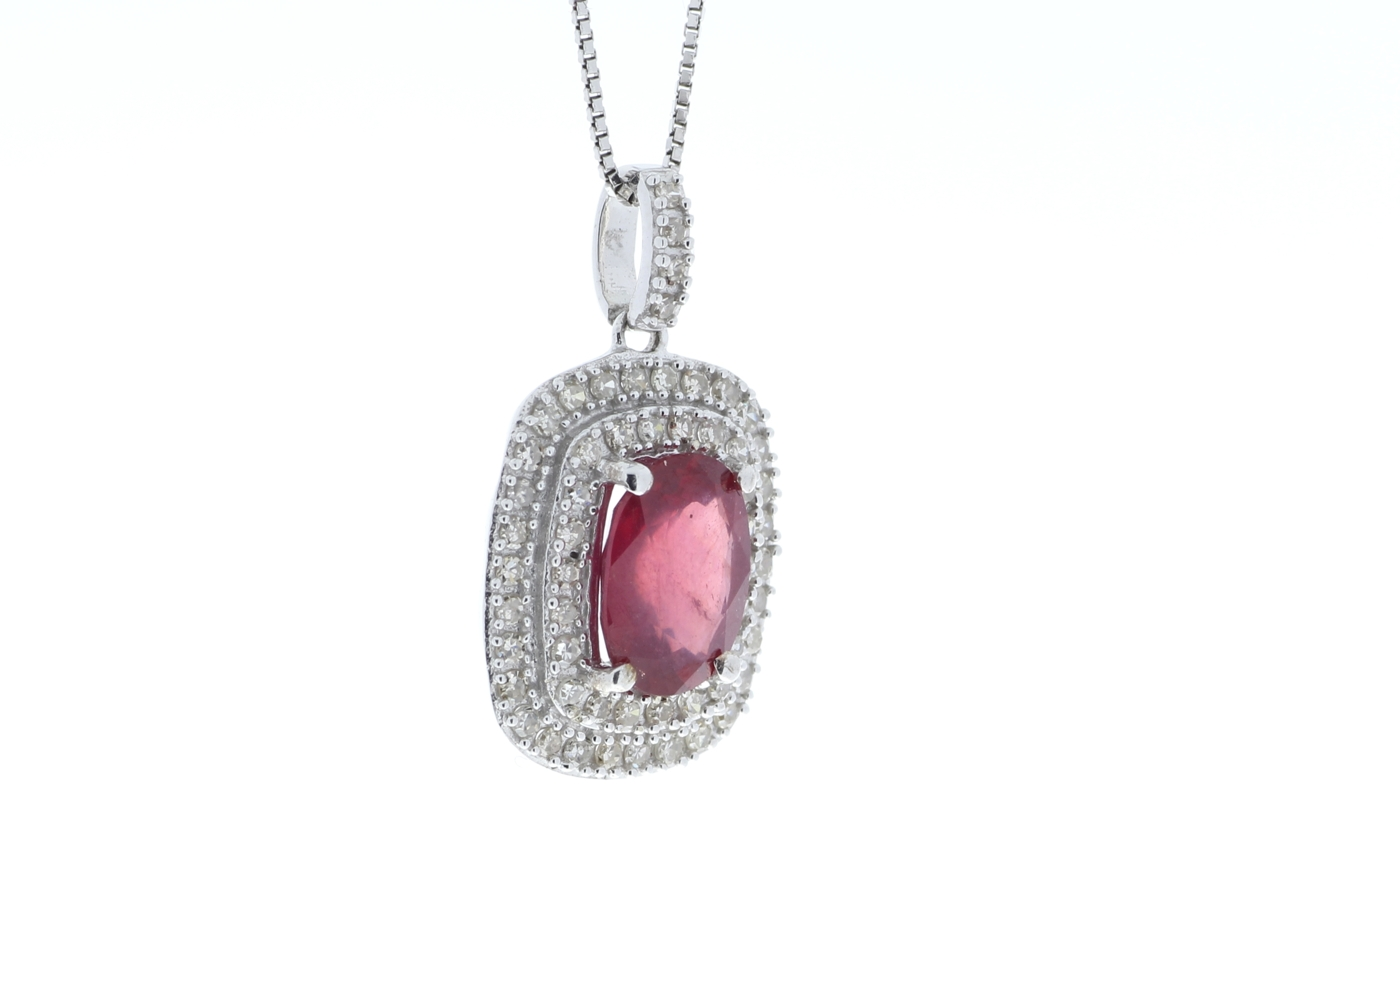 9ct White Gold Oval Ruby And Diamond Cluster Pendant 0.28 Carats - Image 2 of 6